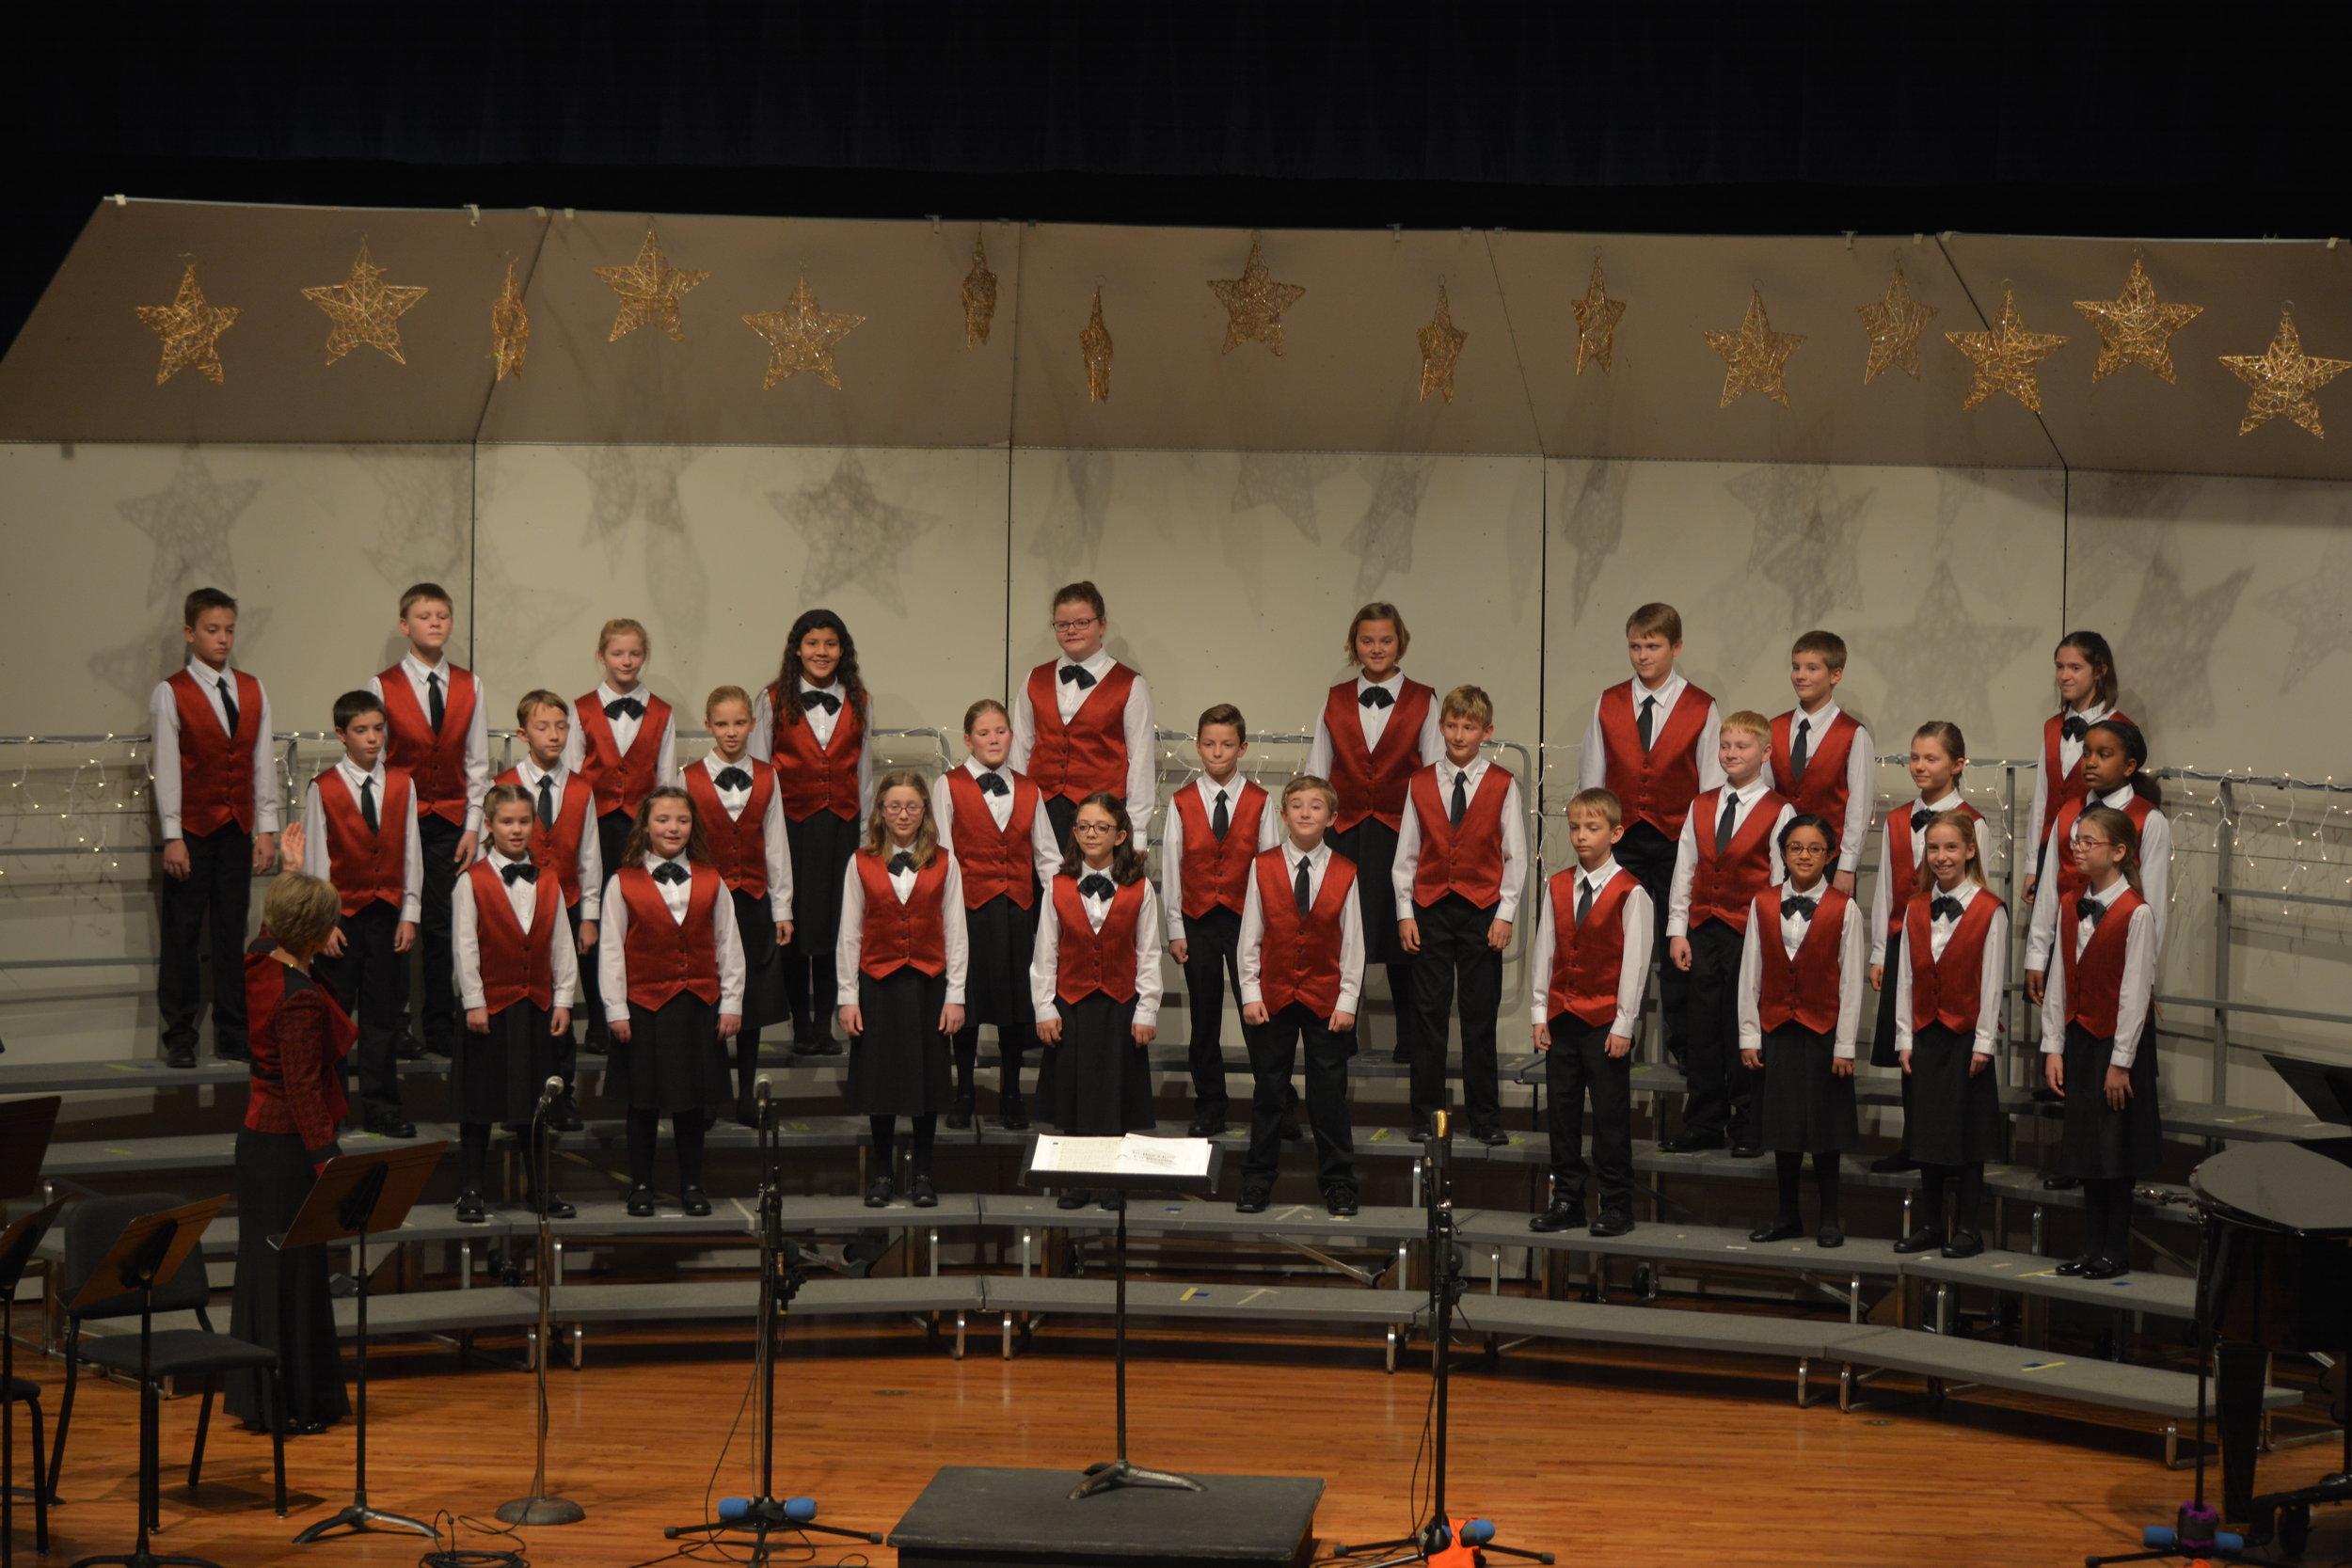 2016-12-04 Treble Choir 1 .jpg